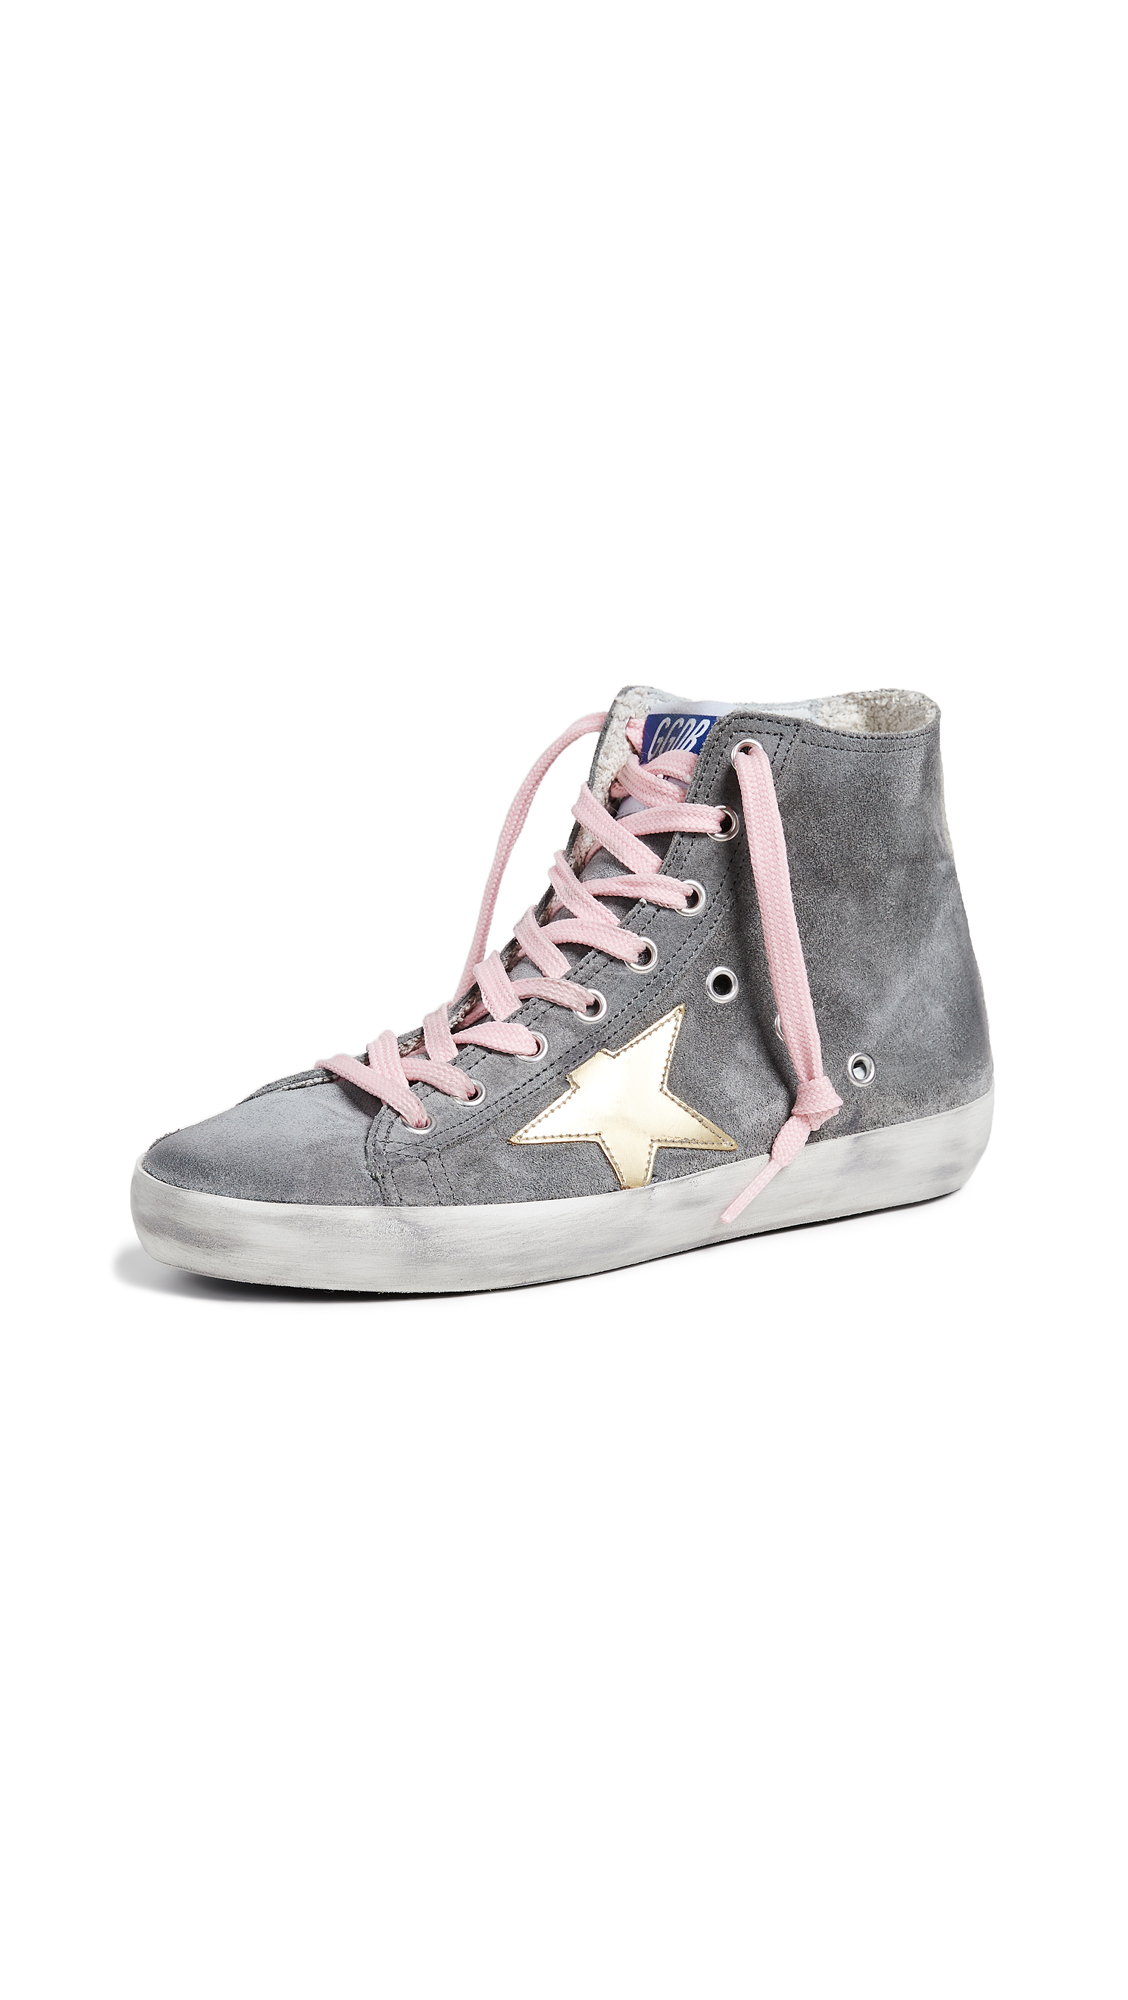 Golden Goose Francy Sneakers - Grey/Gold